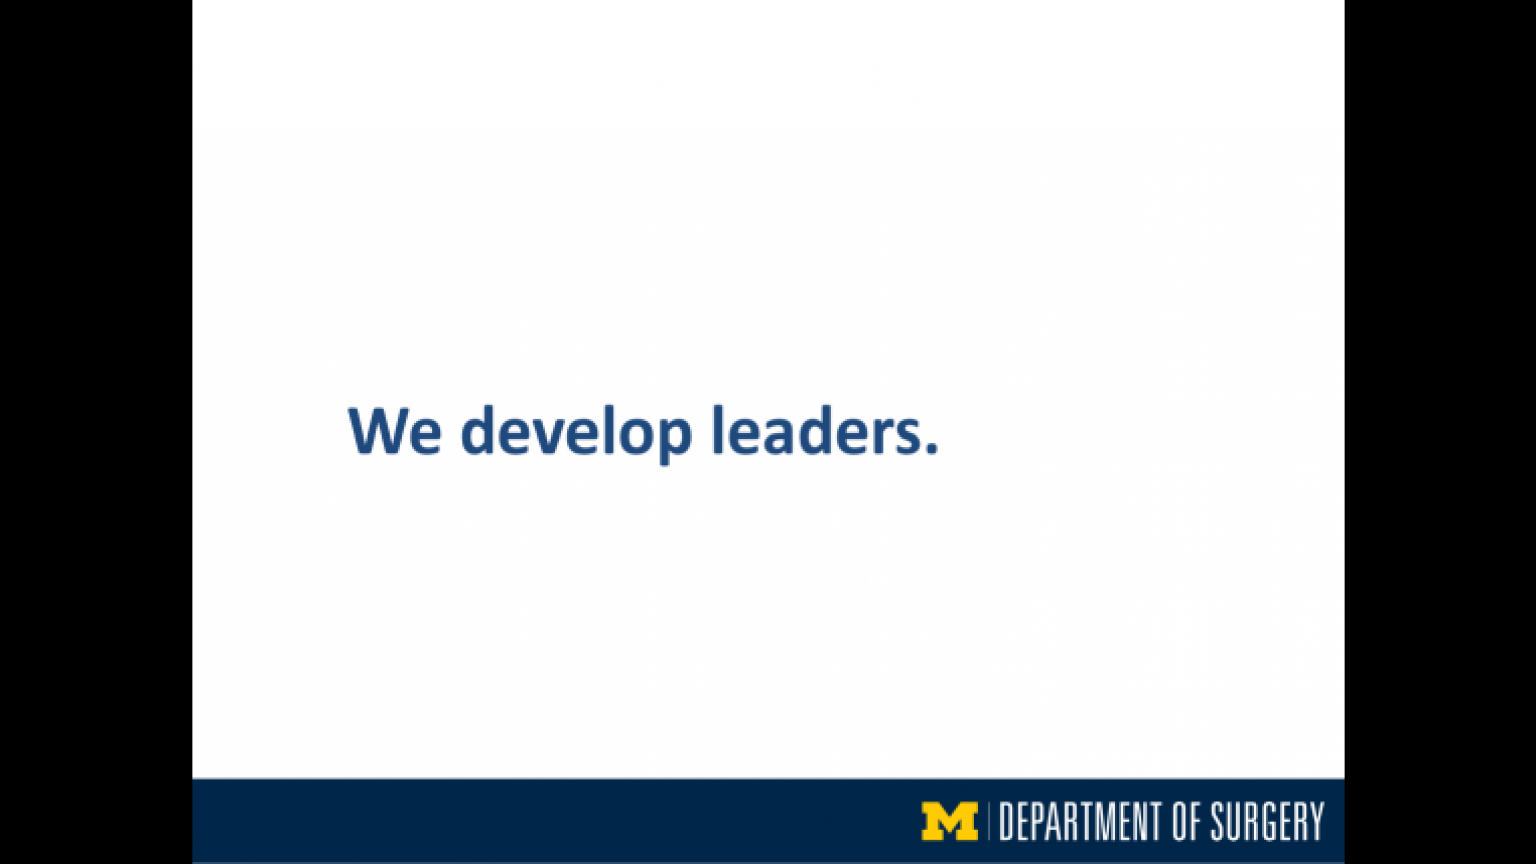 """""""We develop leaders"""" - fifth slide of """"This Is What We Stand For"""" presentation"""